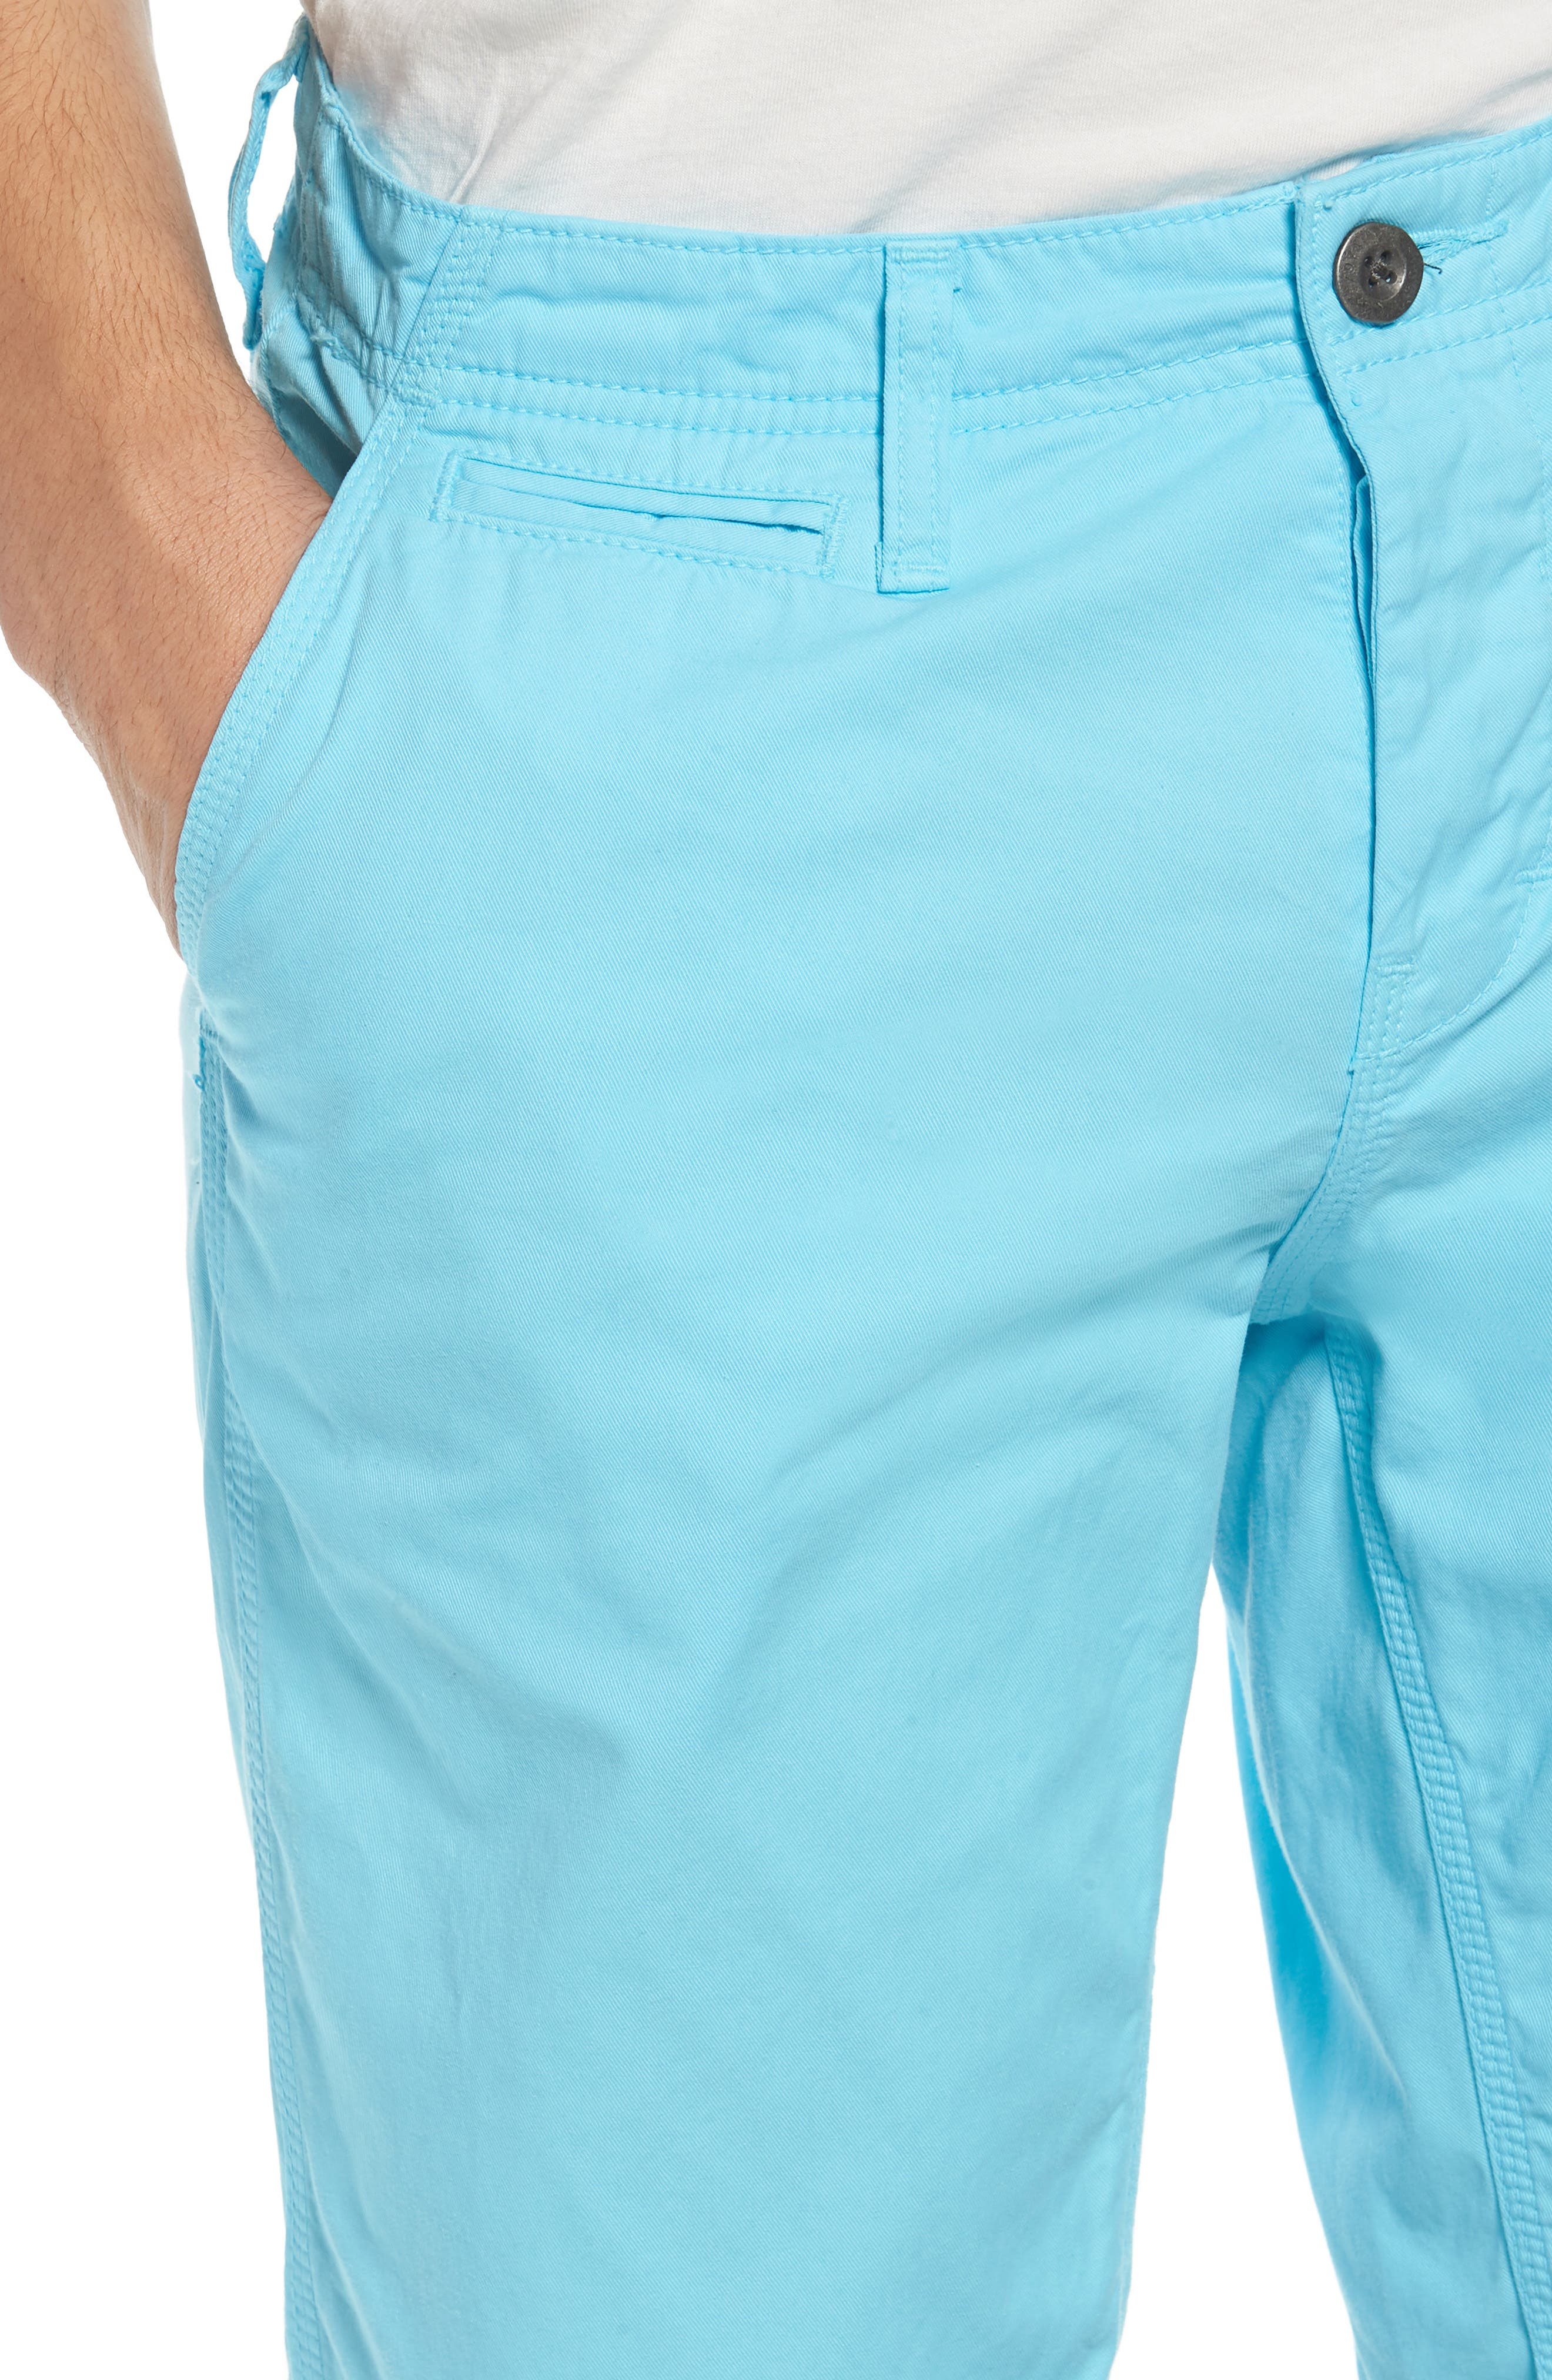 'Napa' Chino Shorts,                             Alternate thumbnail 41, color,